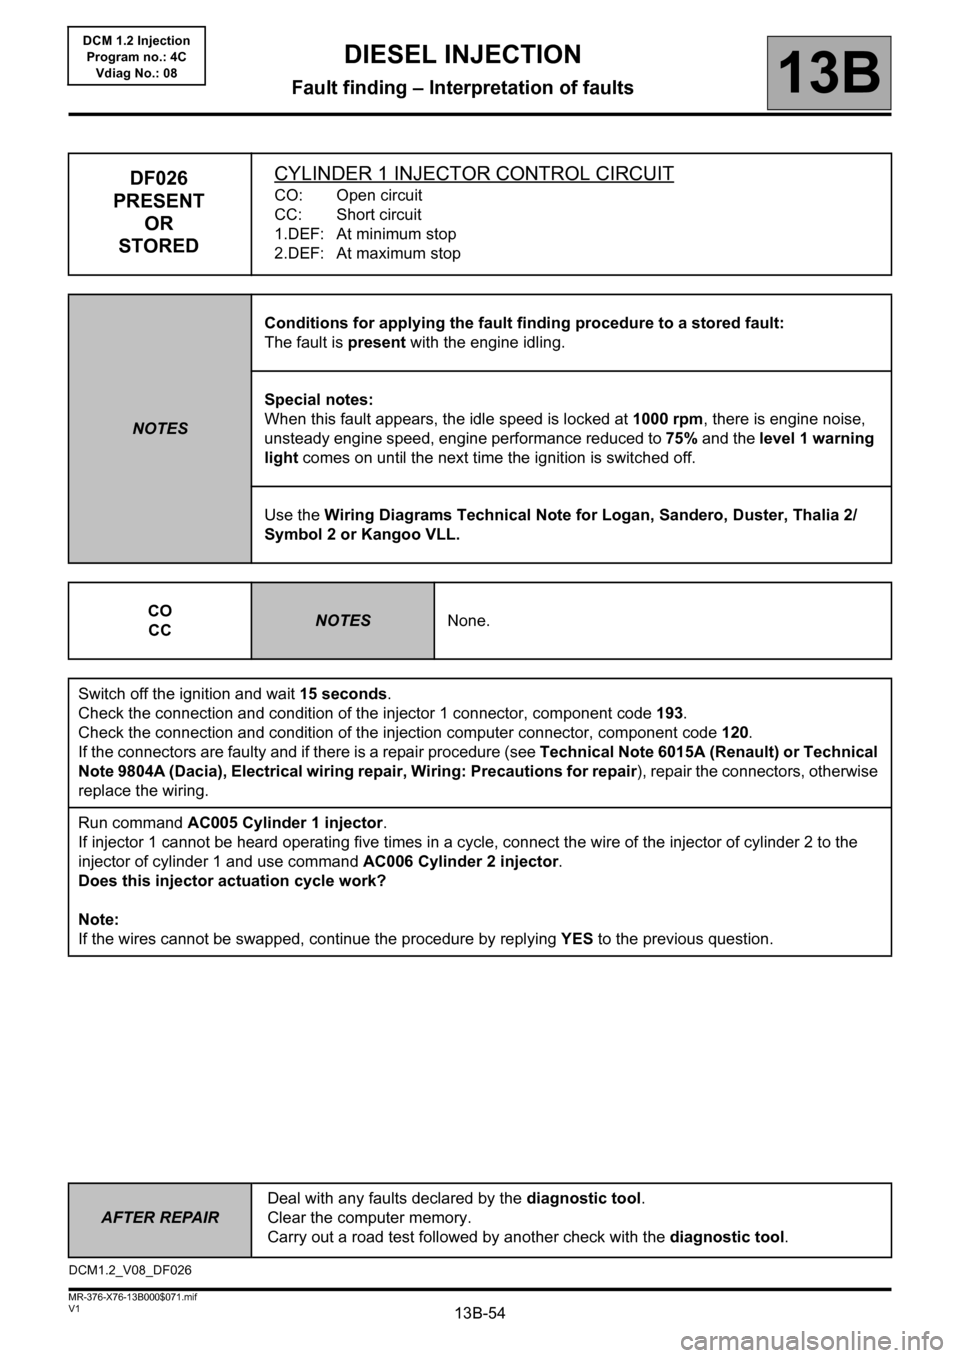 RENAULT KANGOO 2013 X61 / 2.G Diesel DCM 1.2 Injection Workshop Manual, Page 54